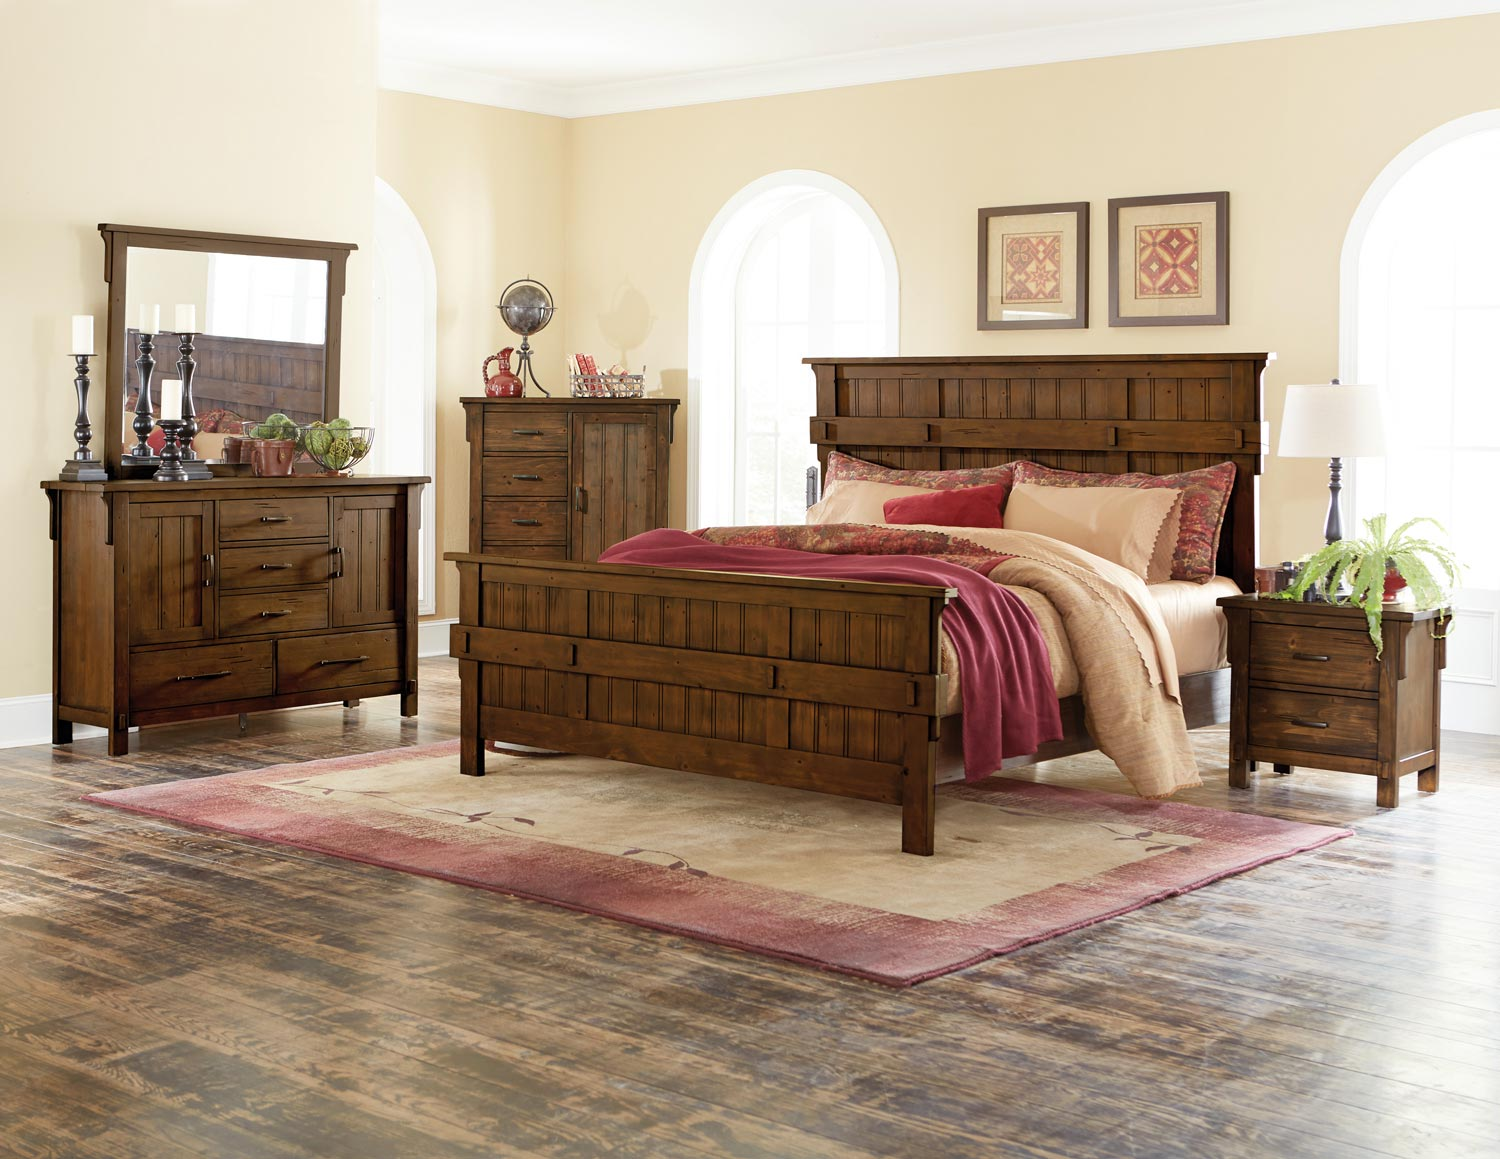 Homelegance Terrace Panel Bedroom Set - Rustic Burnish Oak